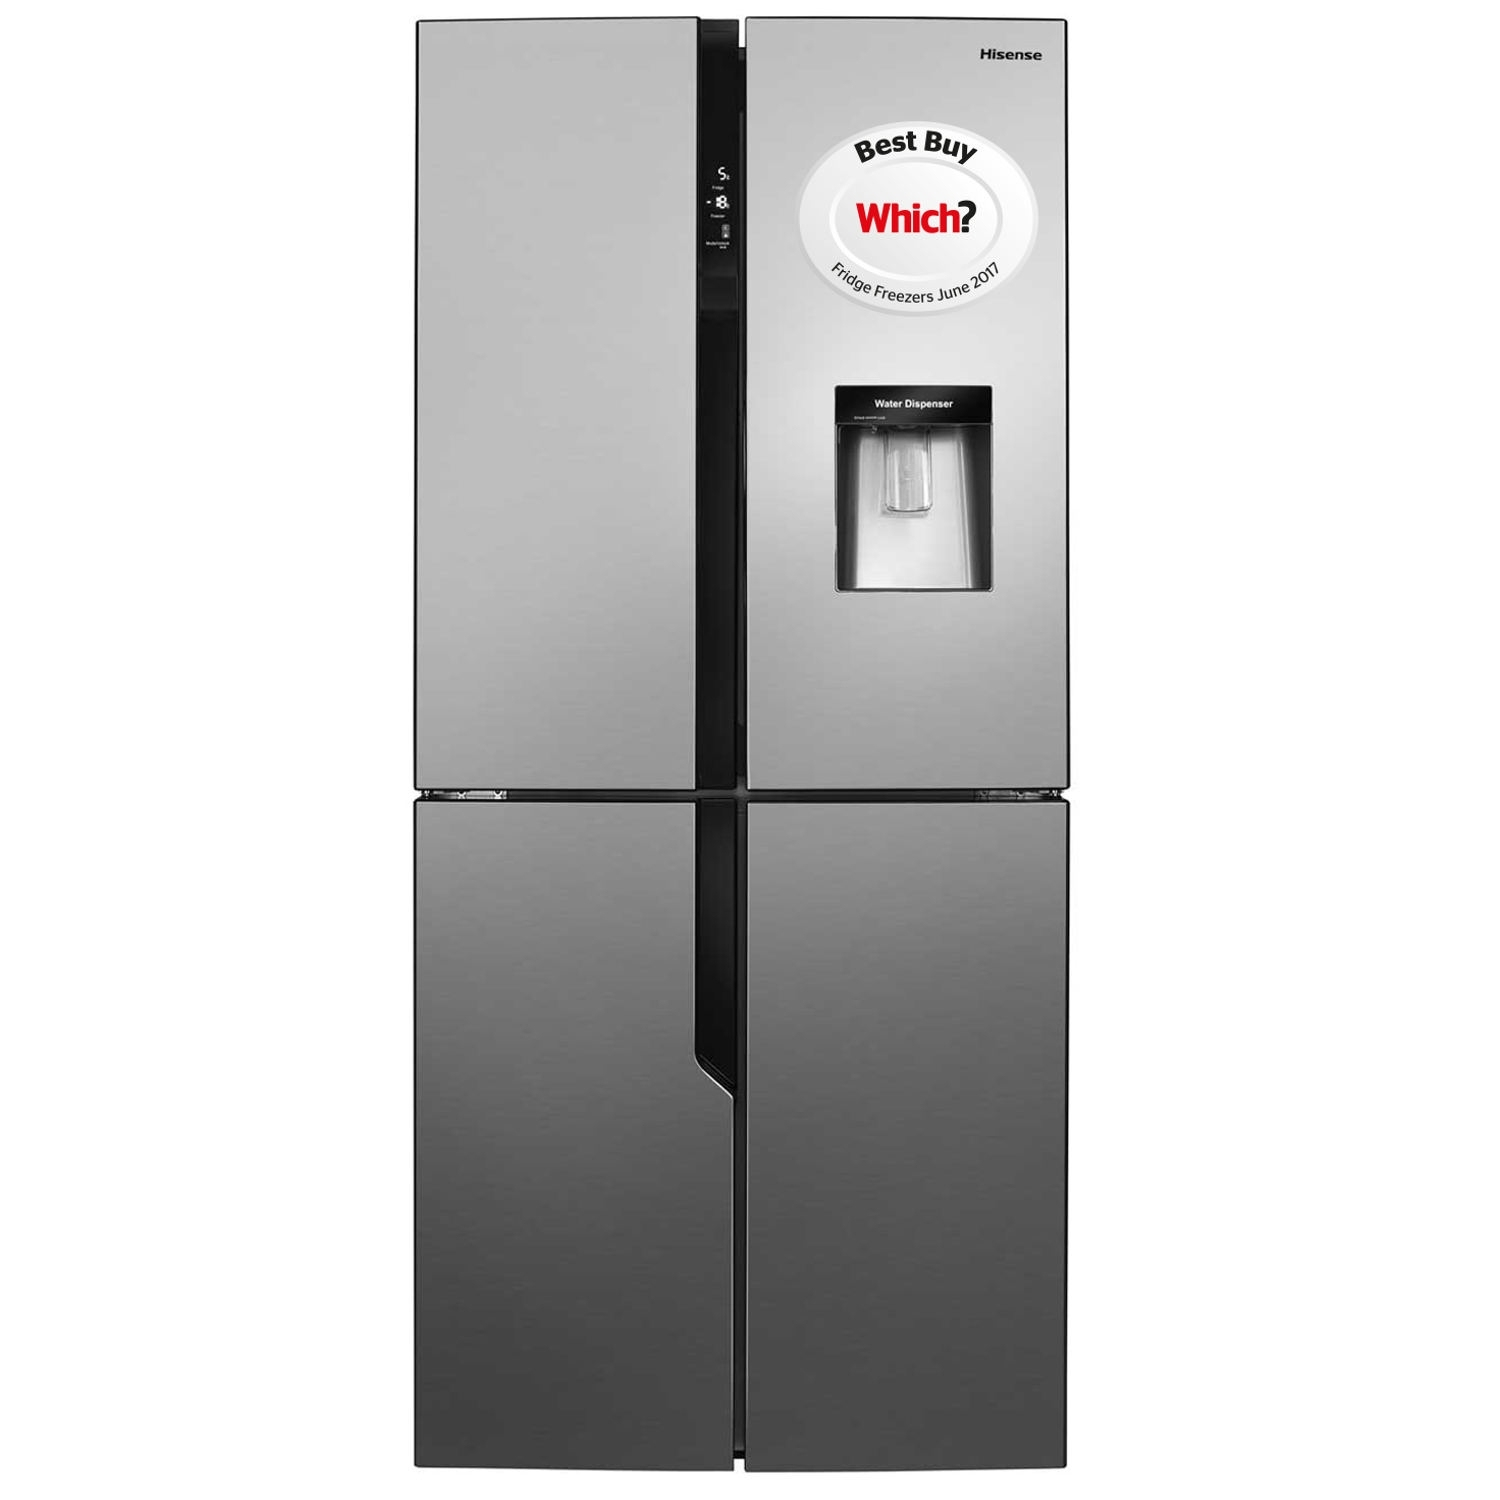 Hisense American Style Fridge Freezer - Stainless Steel Effect  - 0